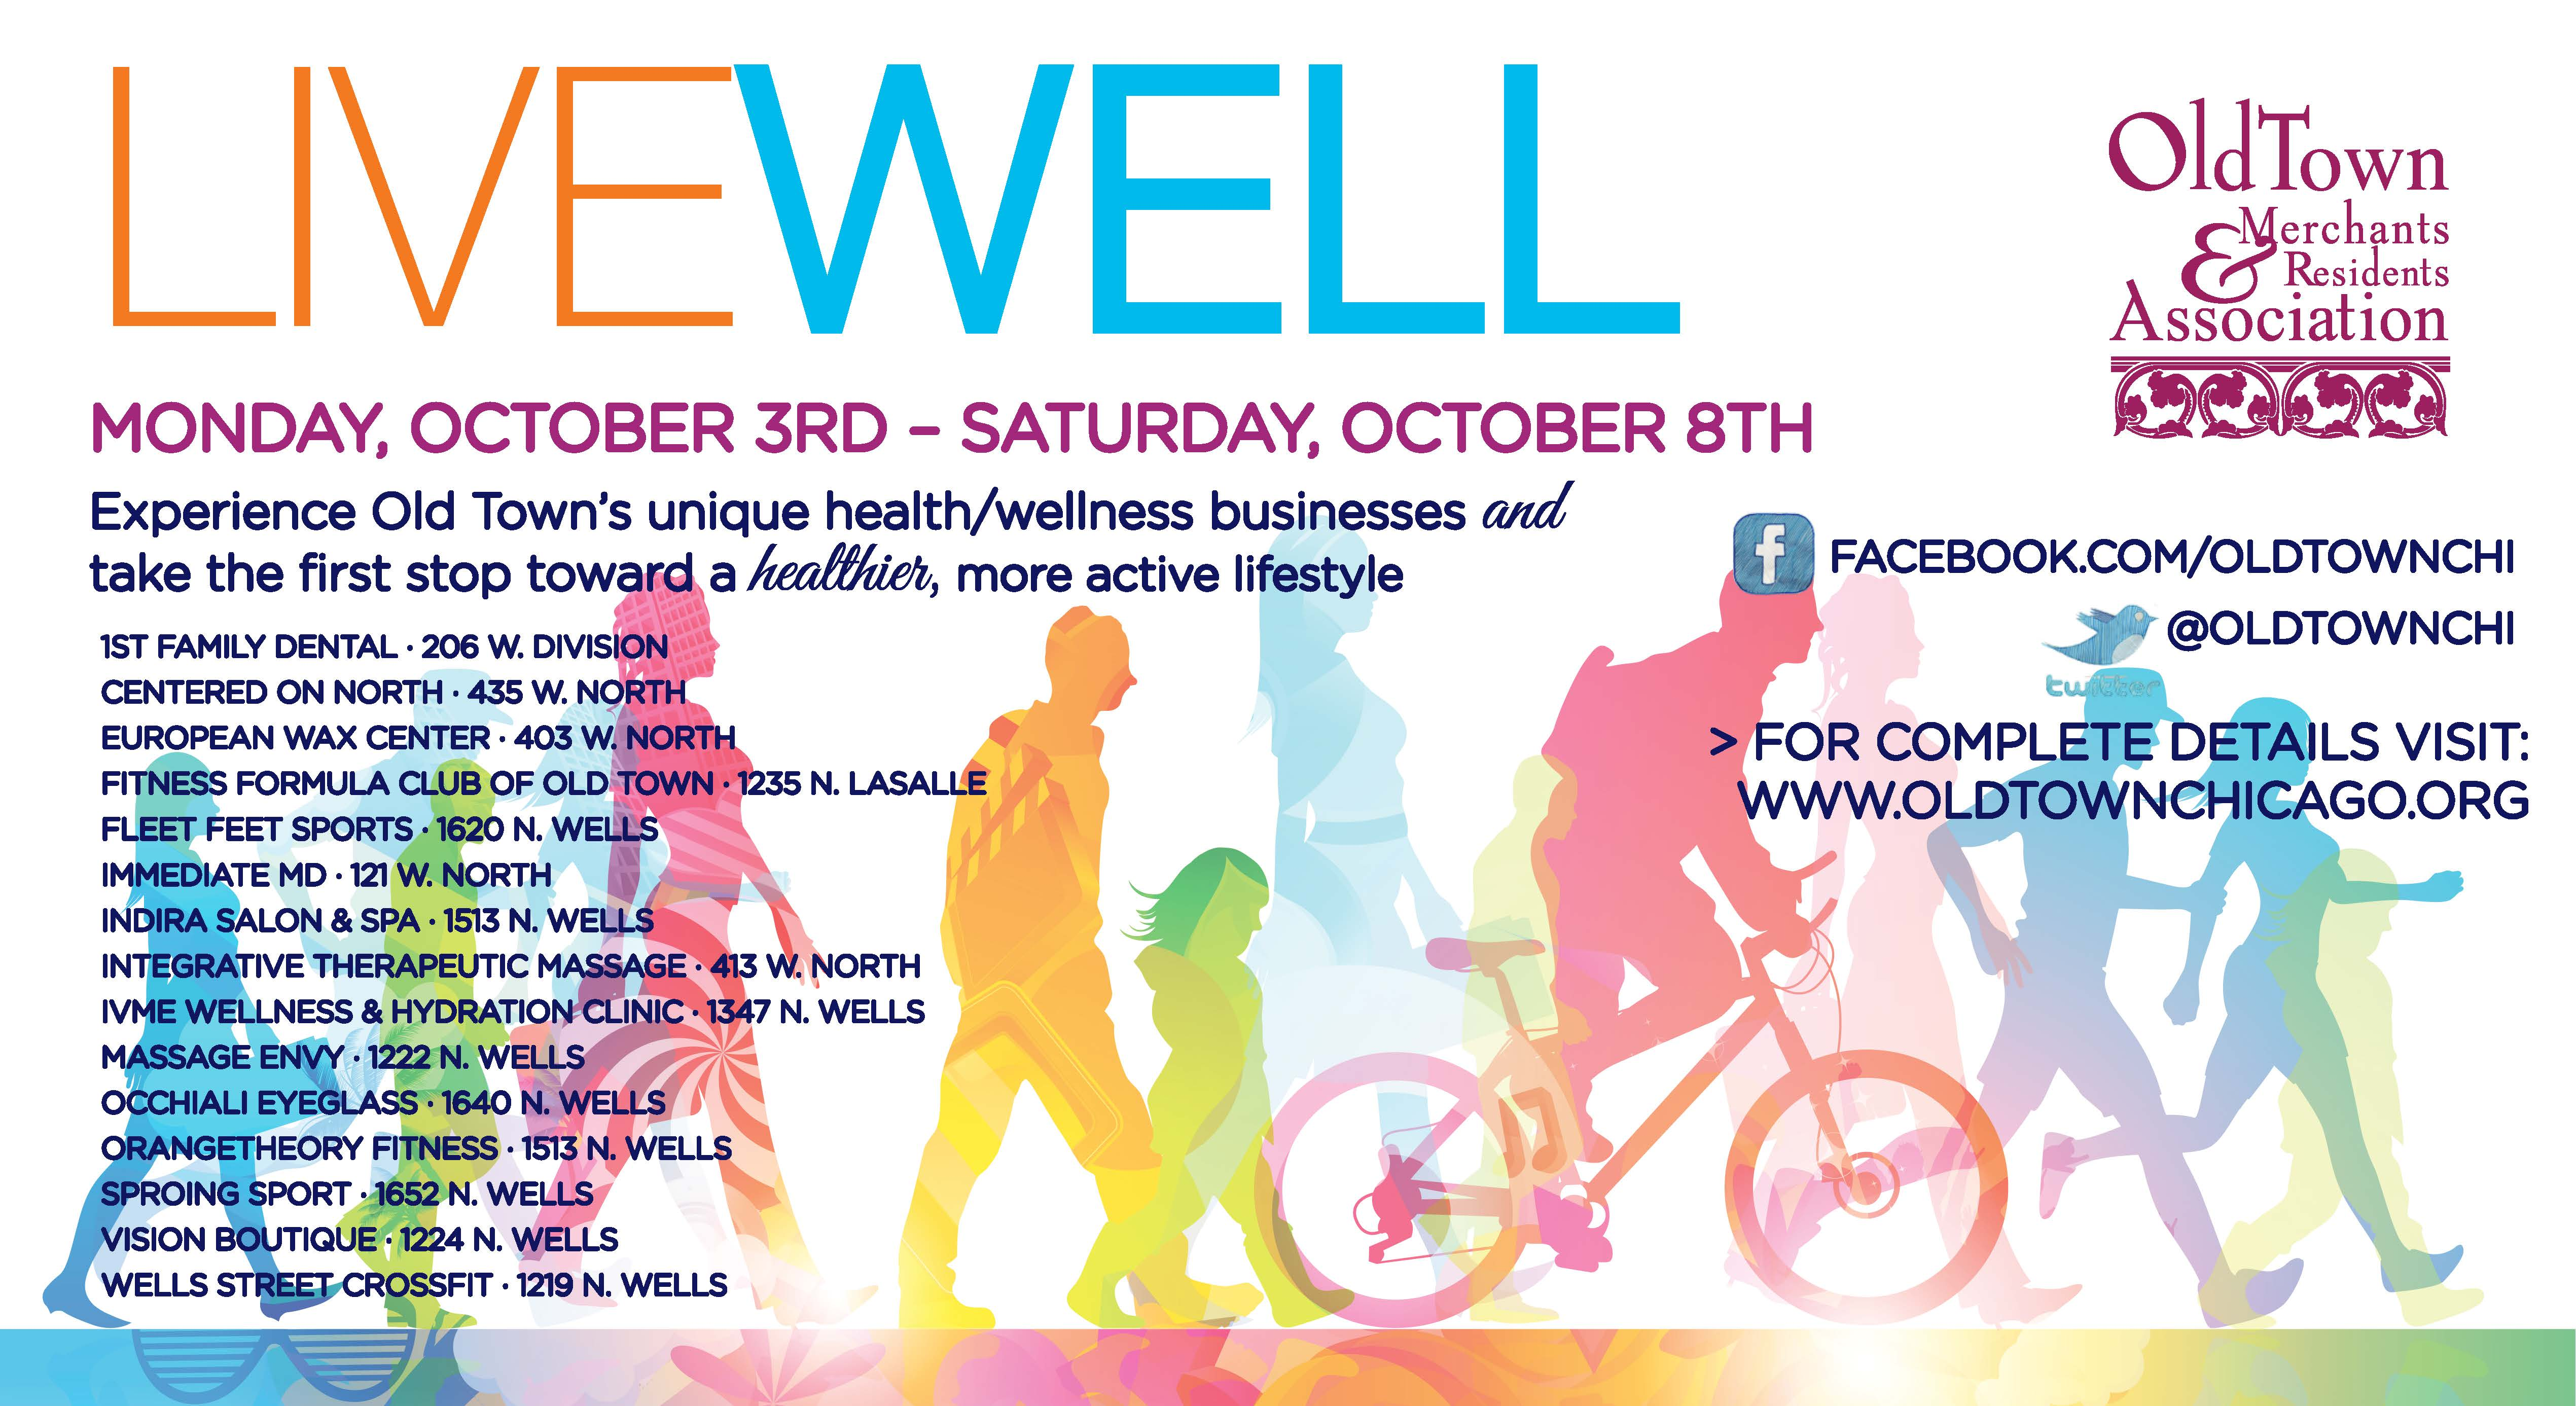 2016 Old Town Live Well Week